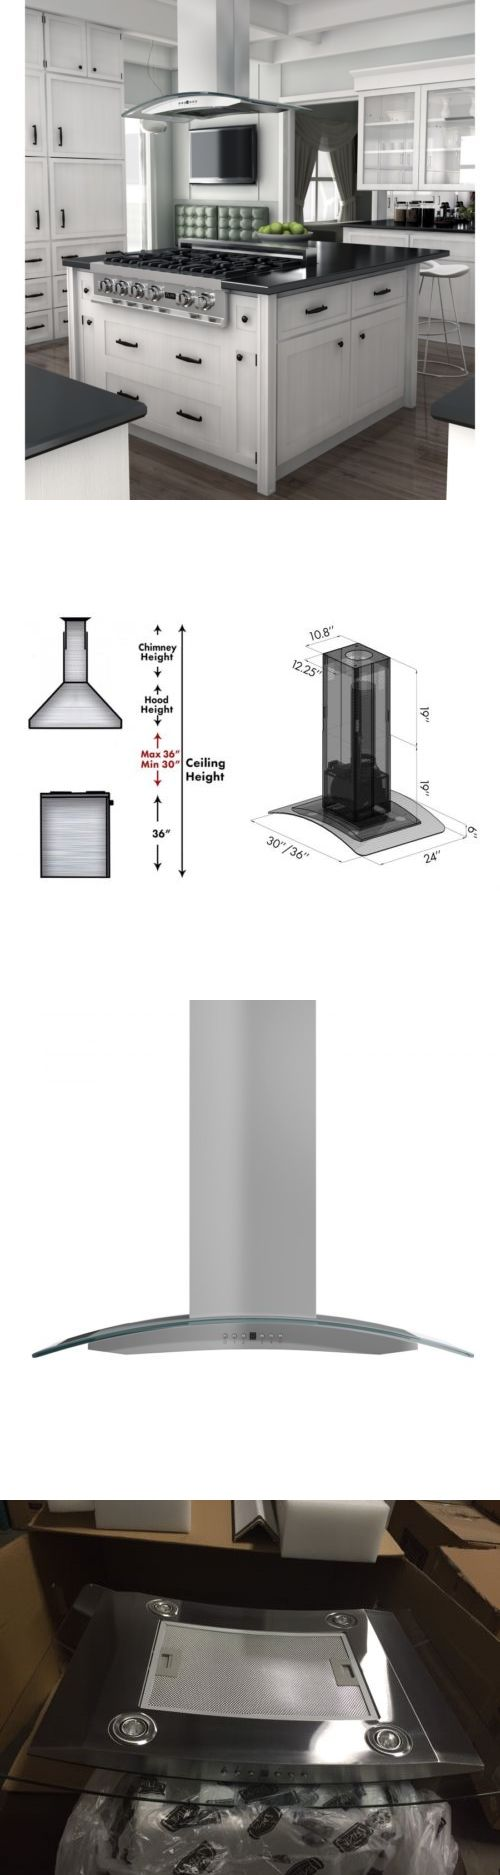 Retro Range Hood Best 10 Island Range Hood Ideas On Pinterest Island Stove